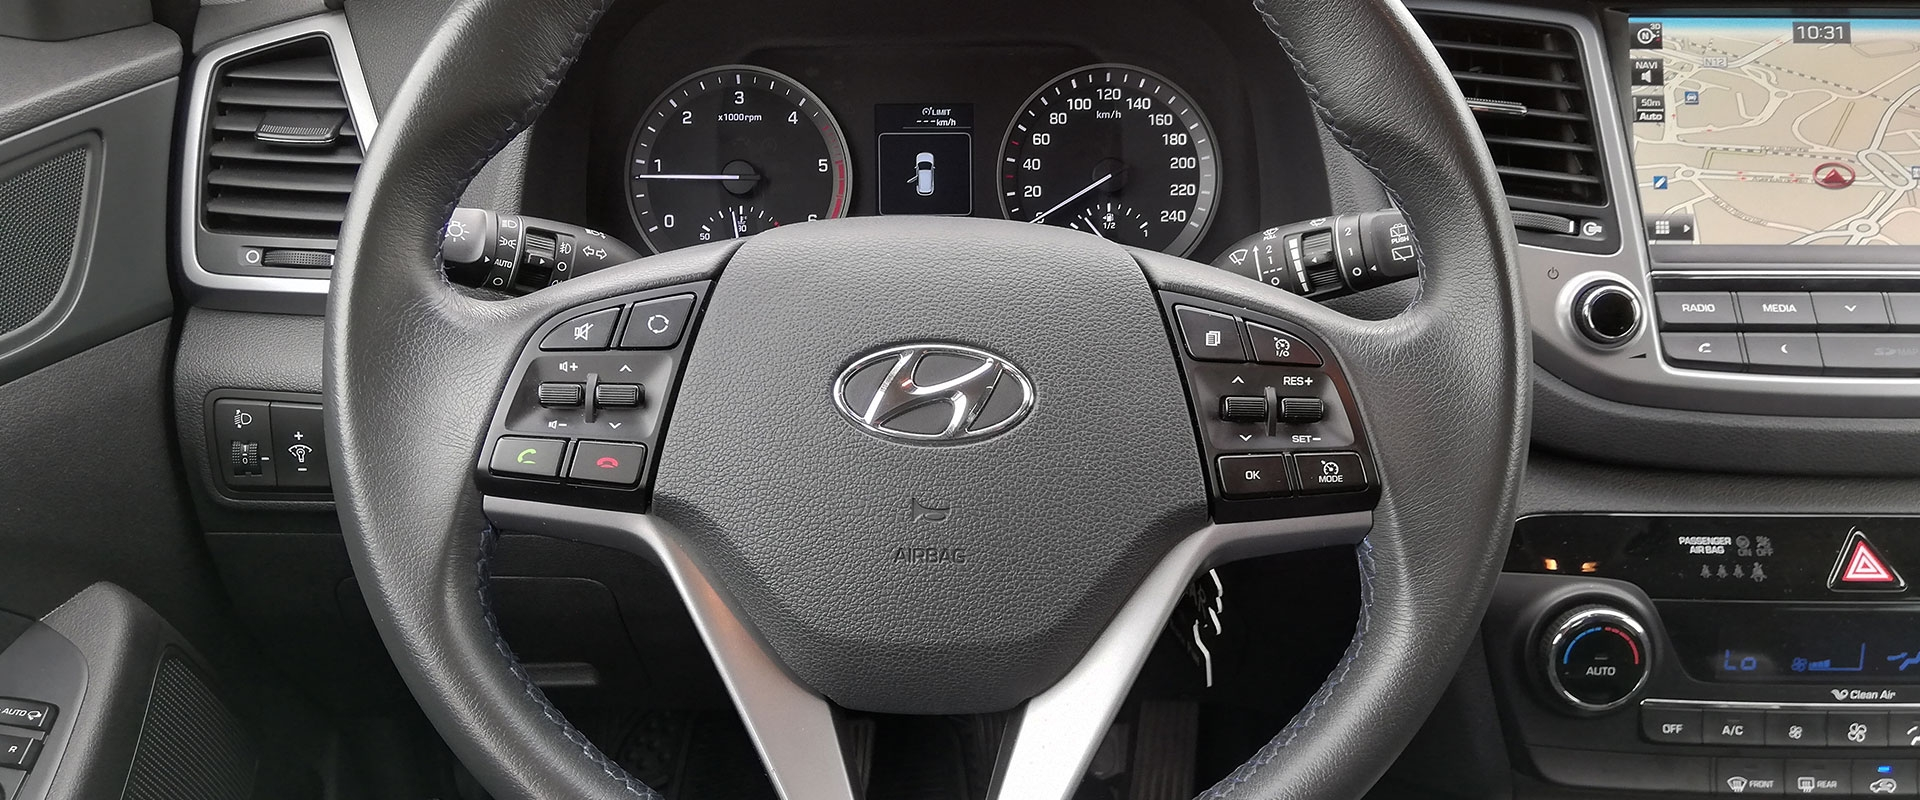 Hyundai Tucson 1.7 CRDi Executive